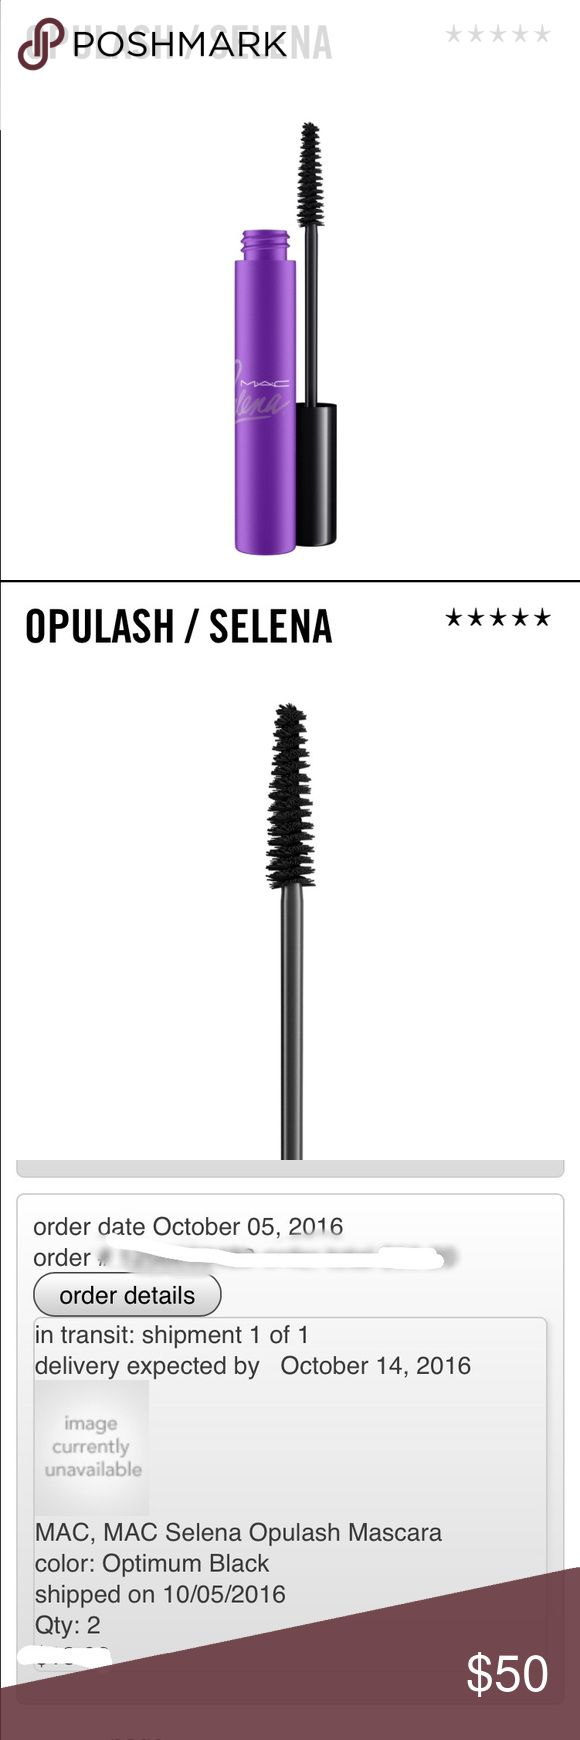 MAC Selena Opulash Mascara MAC Selena Opulash mascara in Optimum Black. Purchased from Macy's. Please keep negative comments to yourself, kthanks! Happy to work out a custom bundle upon request. ⛔️ NO TRADES ⛔️ 🎁 Goodies included with purchase! MAC Cosmetics Makeup Mascara